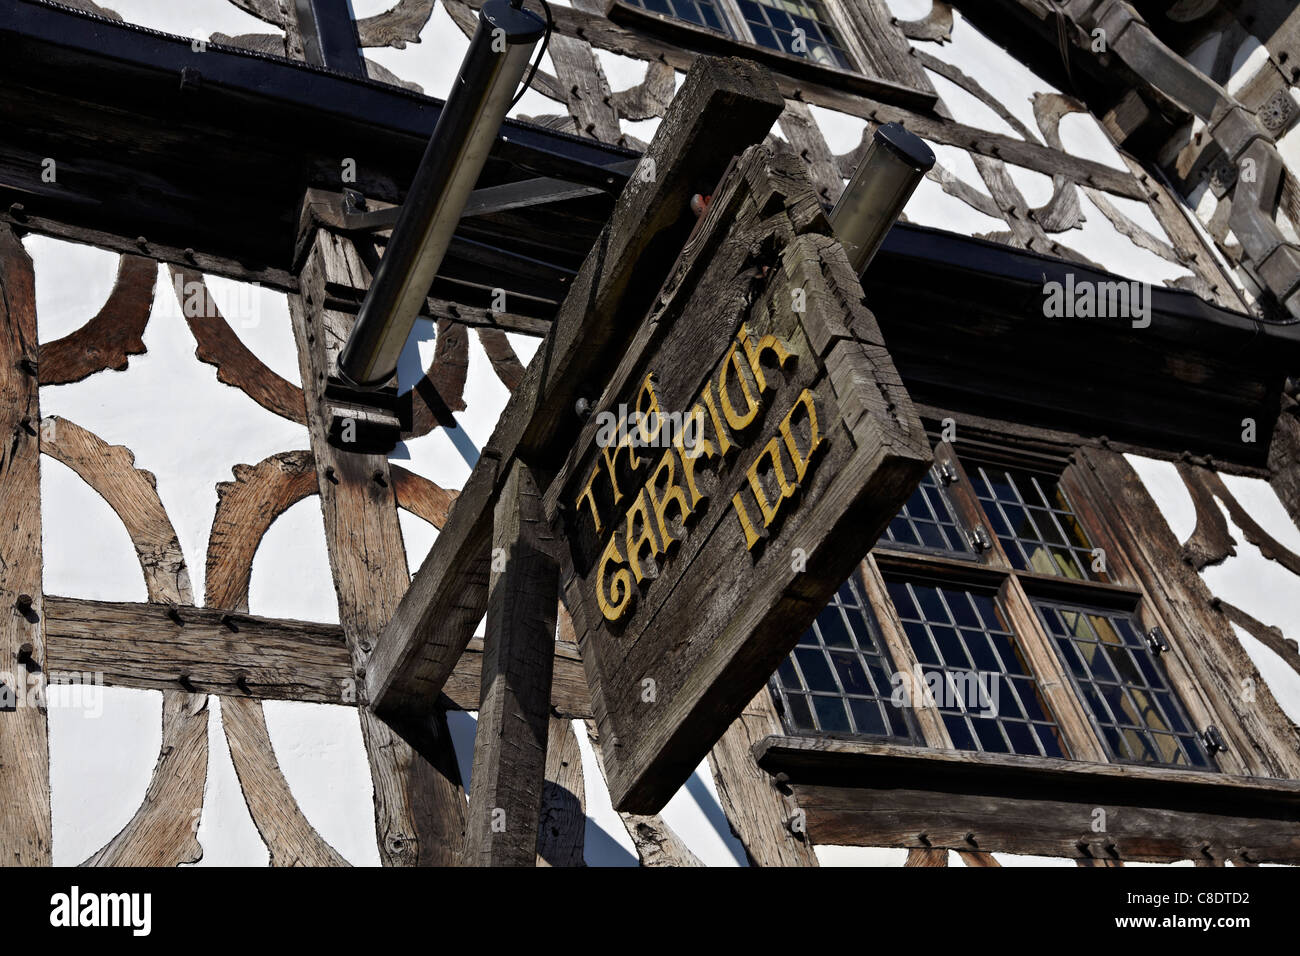 The Garrick Inn, High Street, Stratford upon Avon, England. The towns oldest public house dating back to 1595. - Stock Image